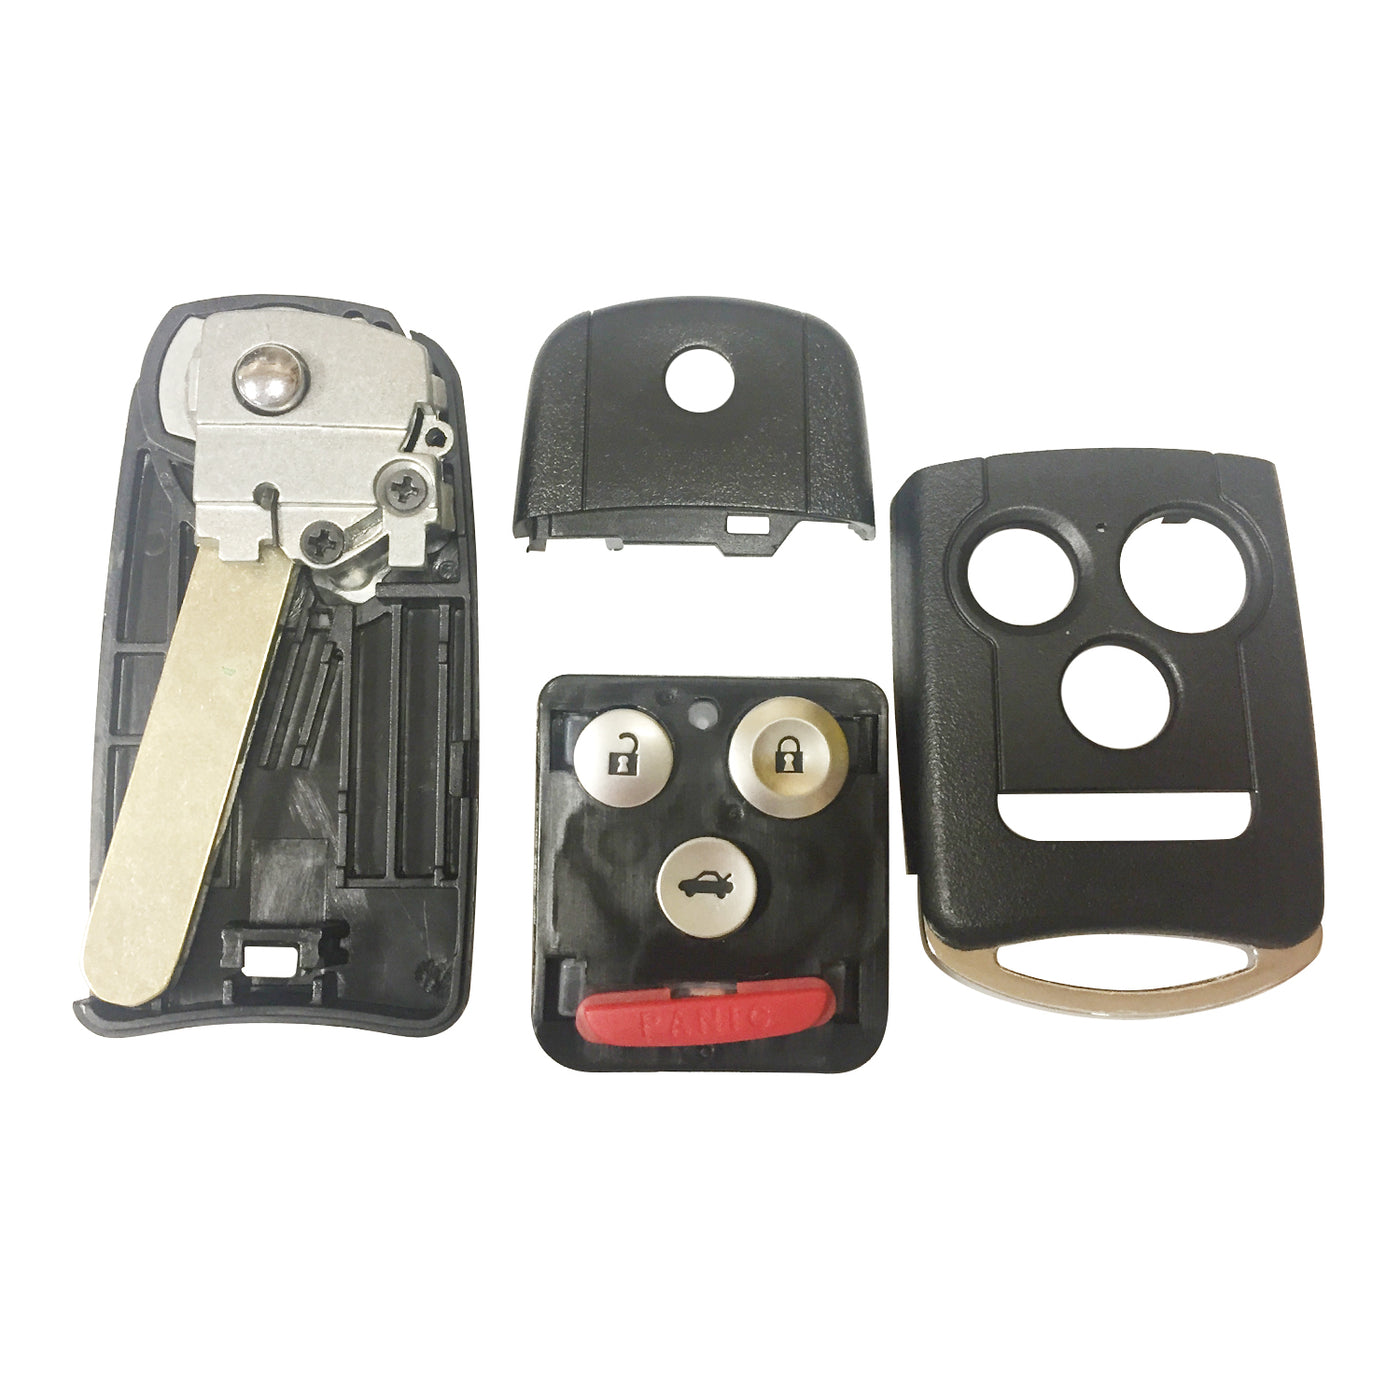 One New Replacement Keyless Entry Remote Flip Car Key Fob